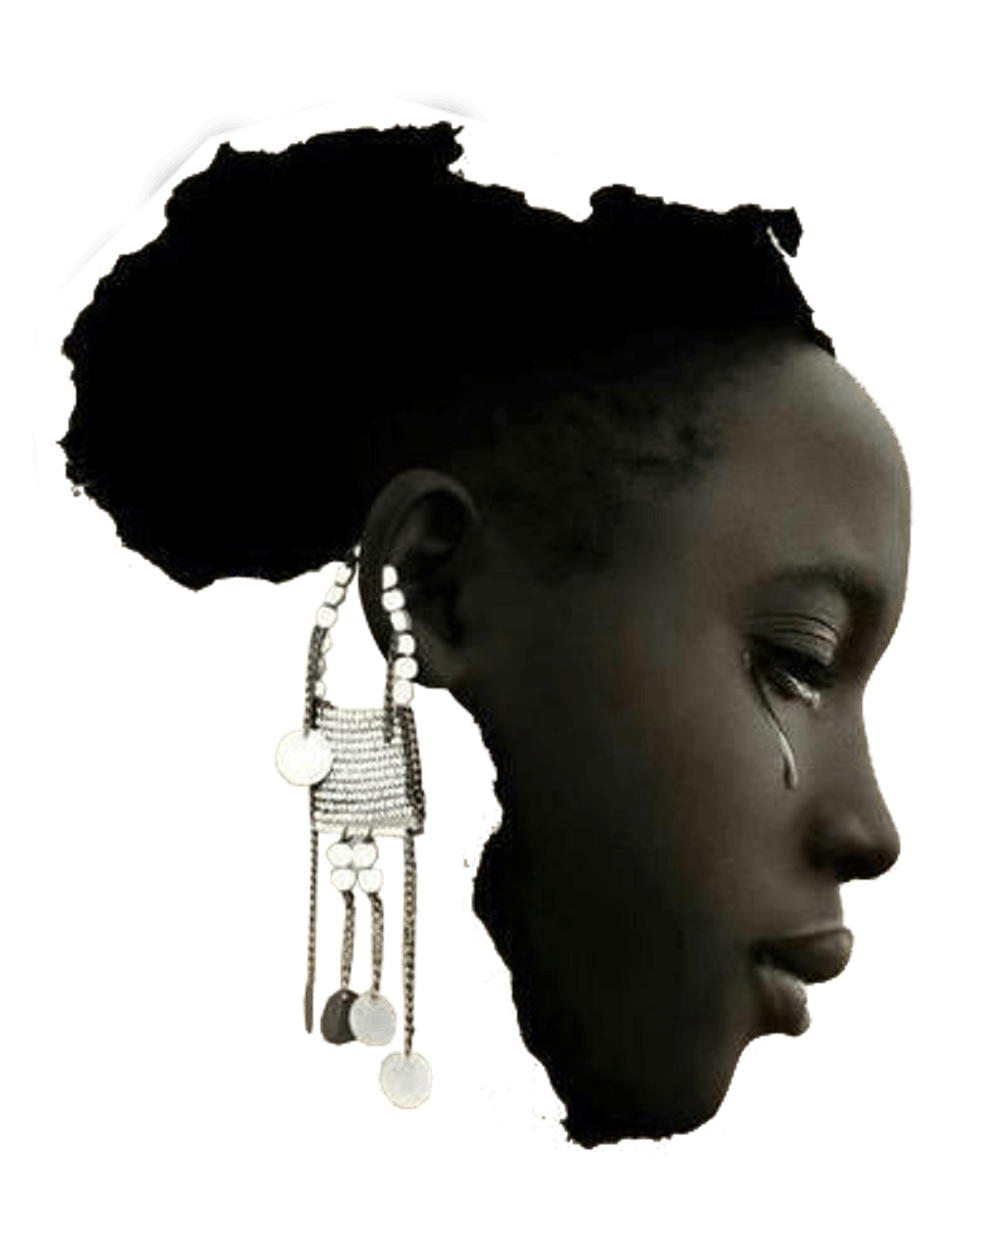 The continent Africa, portrayed as the crying face of a woman